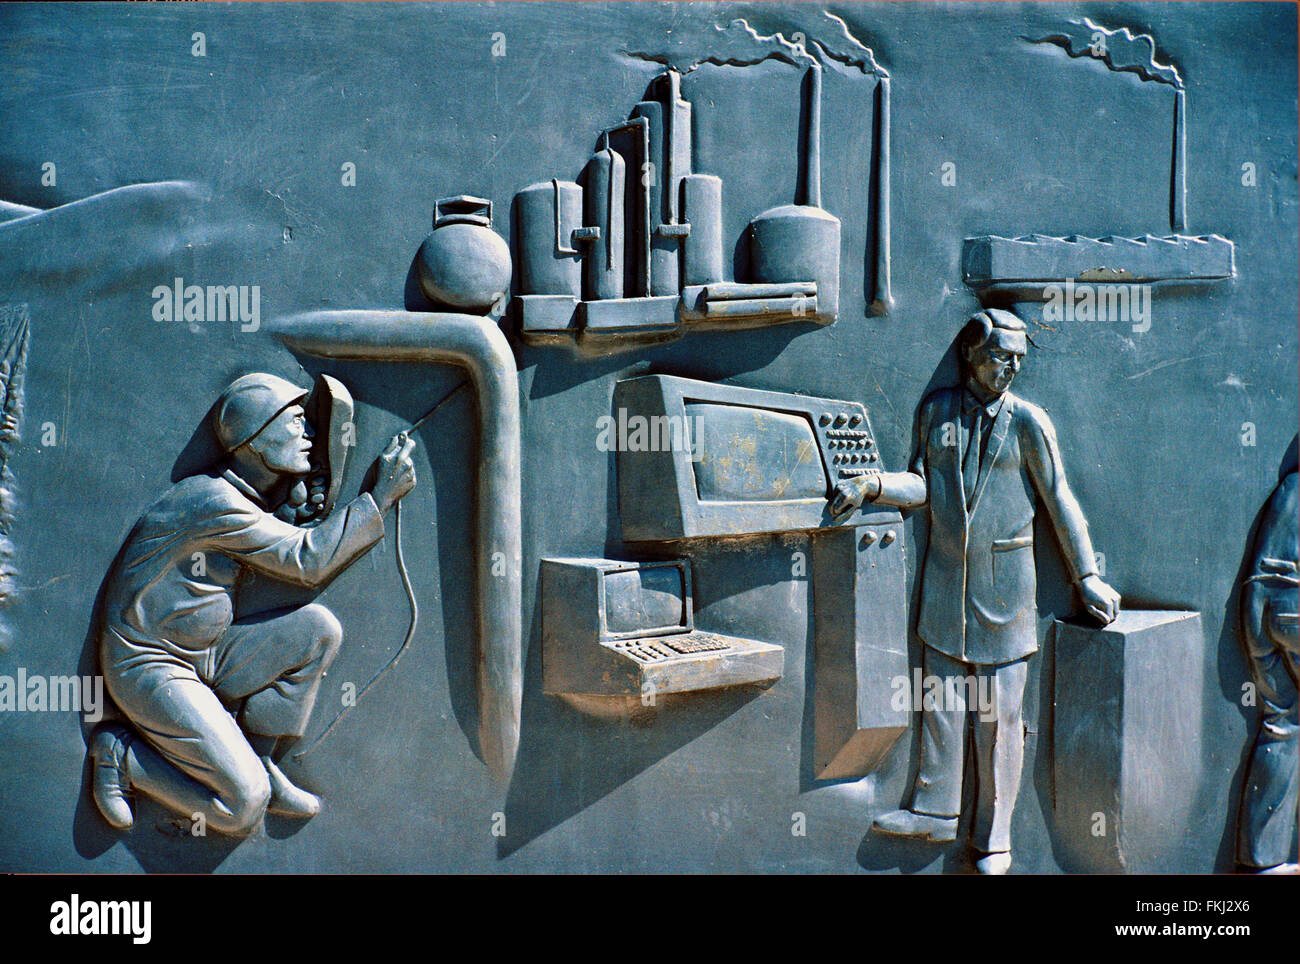 nationalist art or bas relief of modern factory scene a nationalist stock photo alamy https www alamy com stock photo nationalist art or bas relief of modern factory scene a nationalist 98127742 html